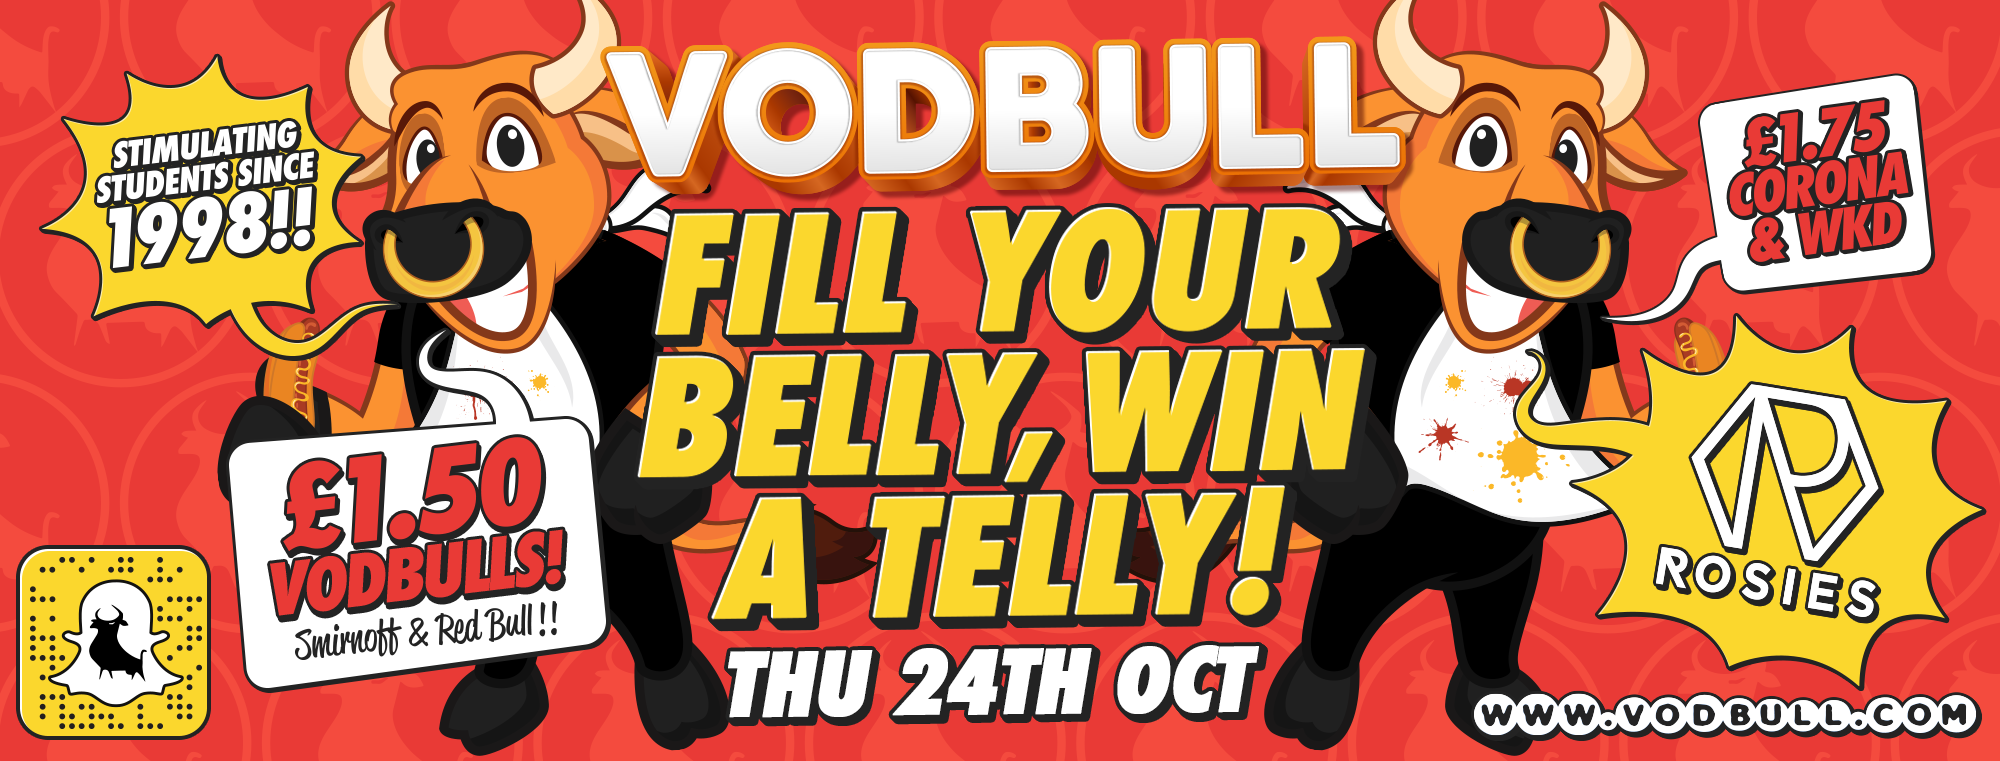 Vodbull FILL YOUR BELLY, WIN A TELLY!